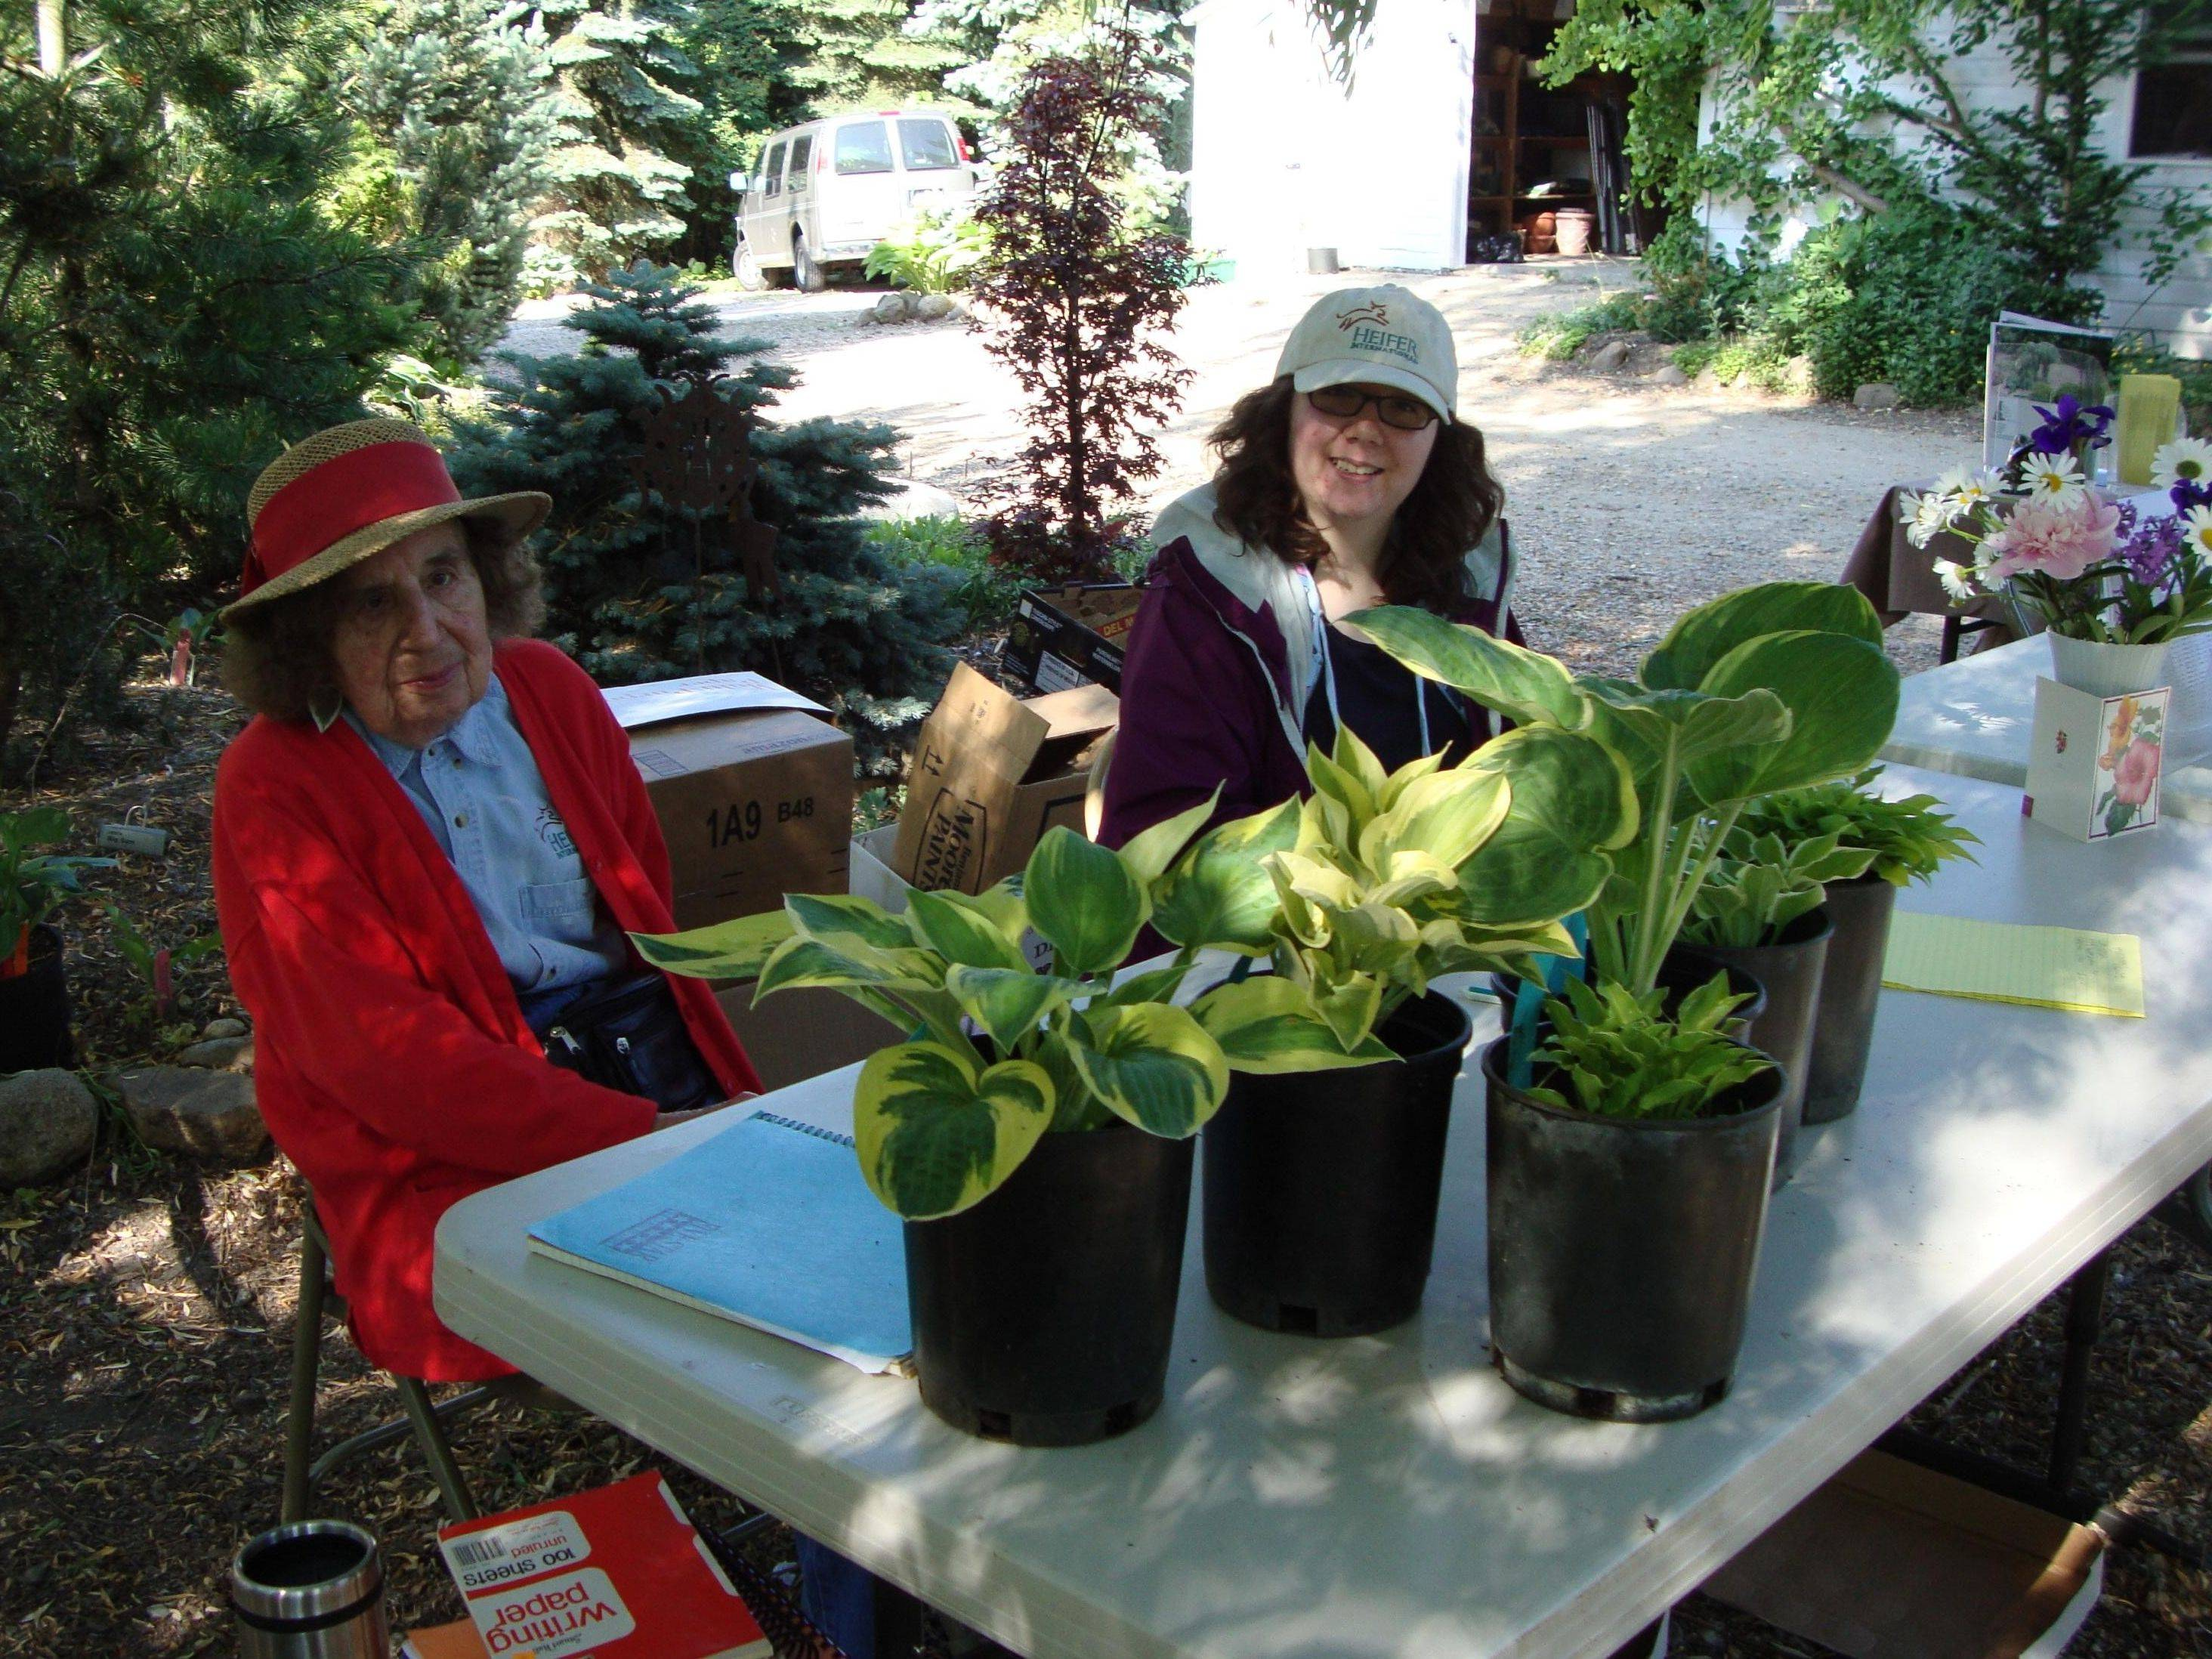 """Hosta Queen"" Margaret Eyre and volunteer Nina Sandner help out at last year's Hosta Happening fundraiser event. This year's event will be Saturday, June 11, in Woodstock."